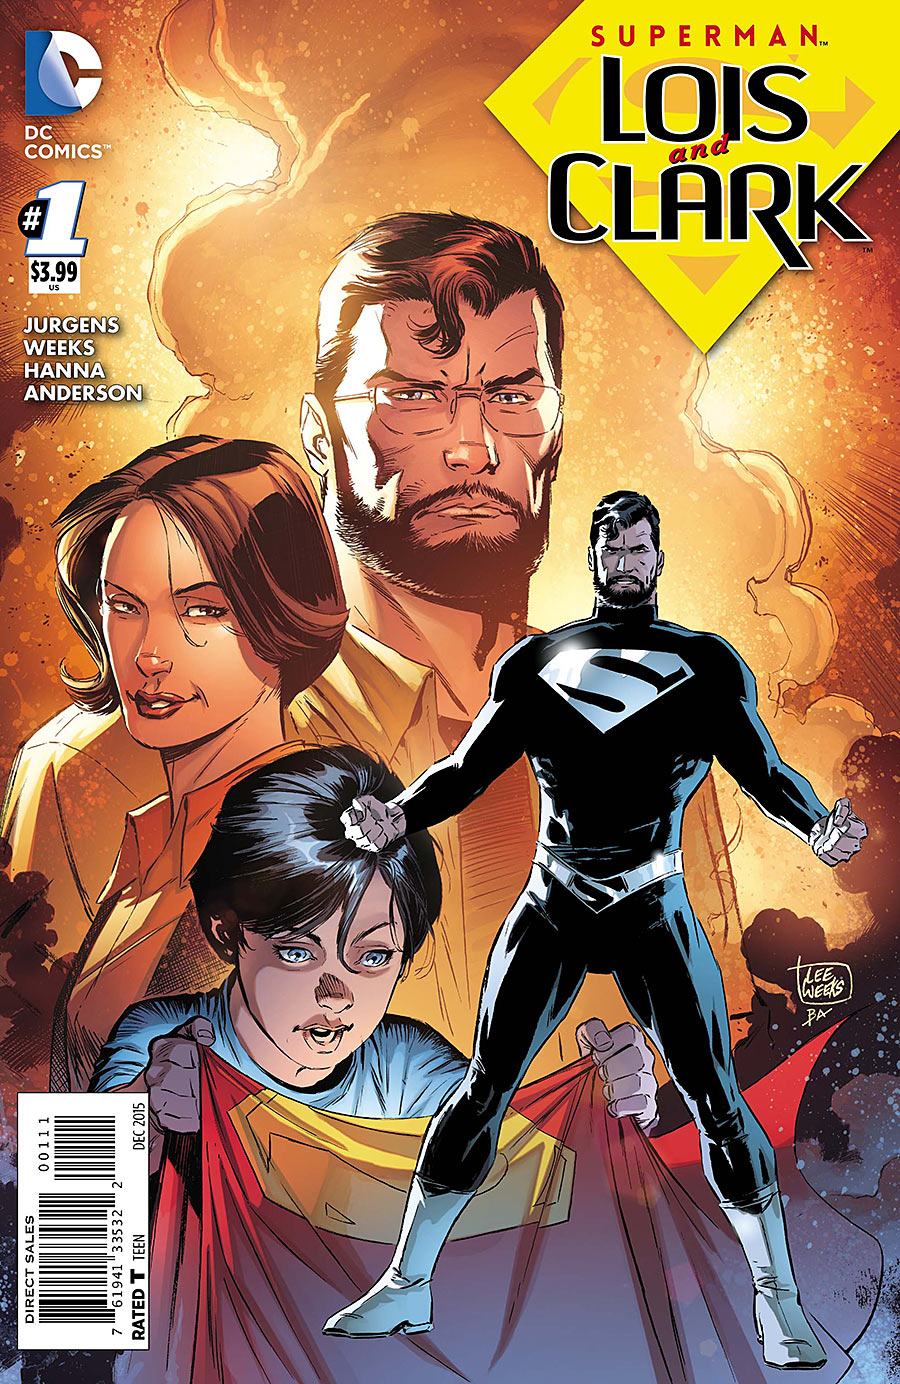 Image result for Superman: Lois and Clark by Dan Jurgens and Lee Weeks